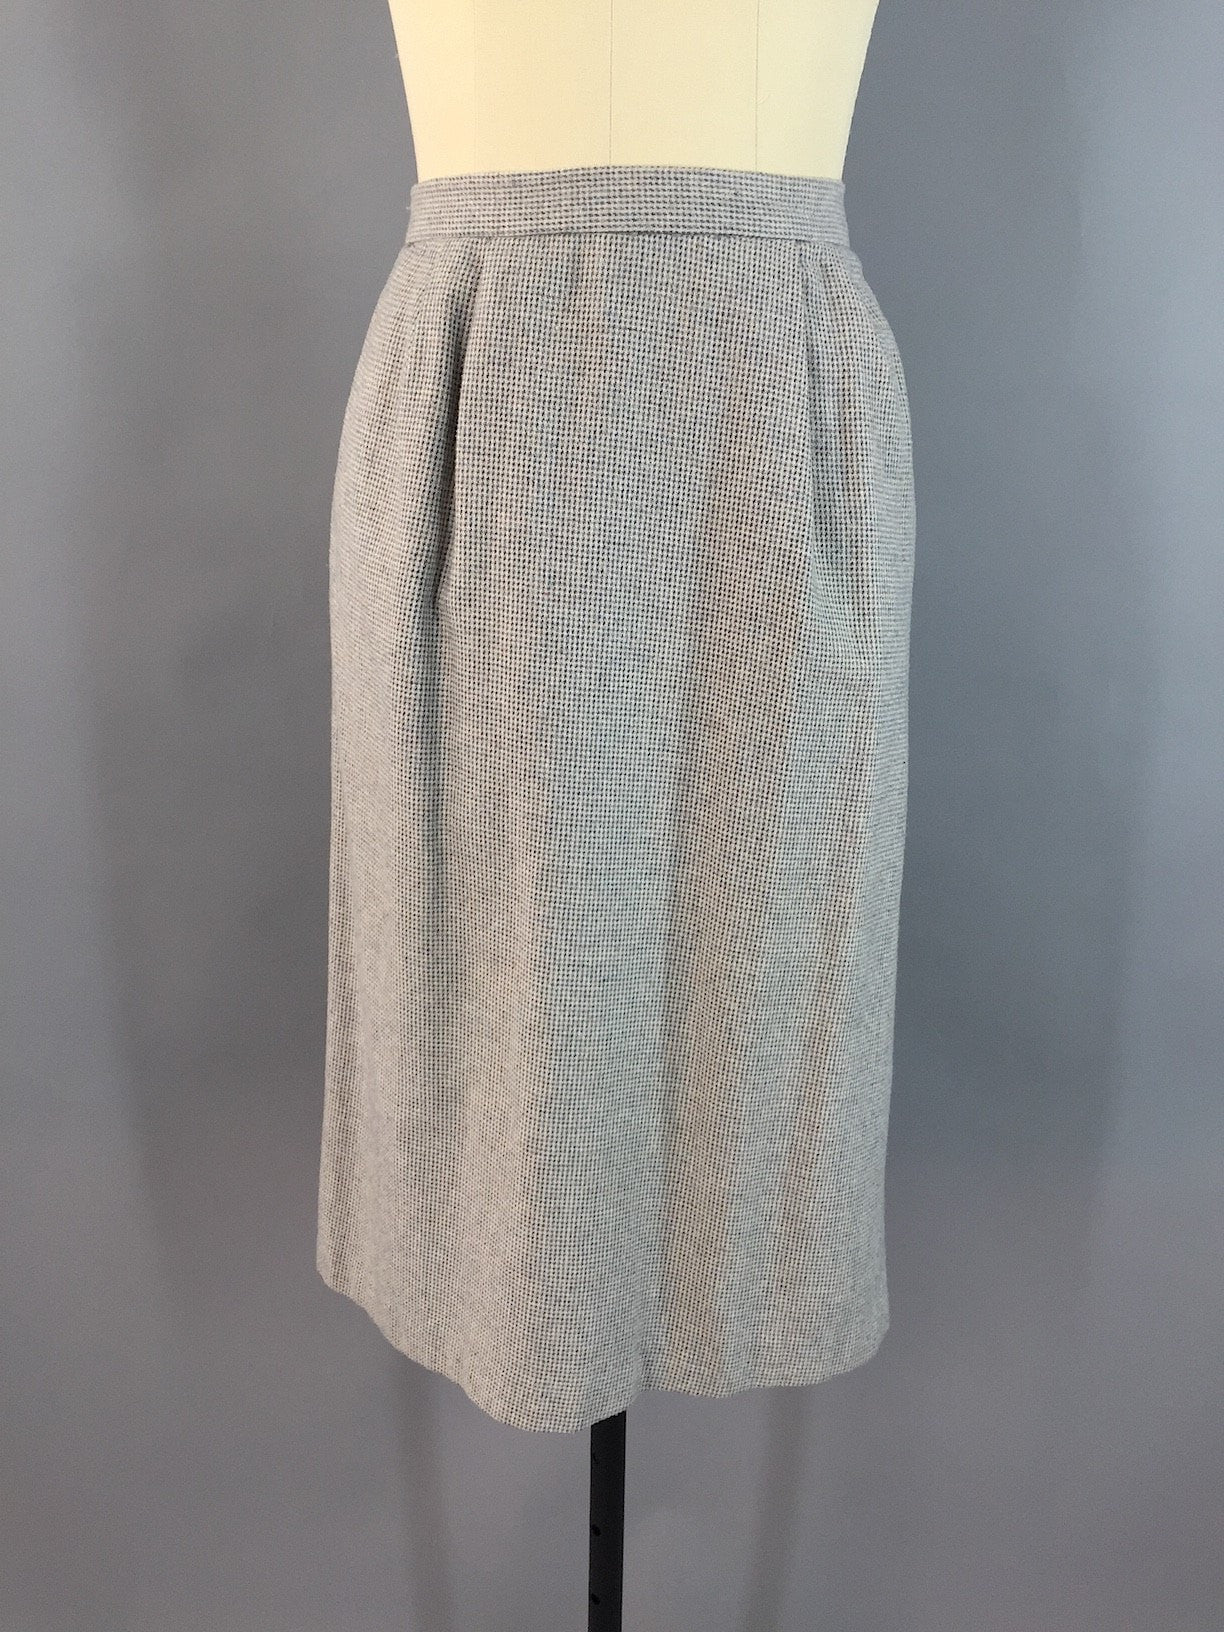 Vintage Cream Beige and Blue Gray Tweed Wool Pencil Skirt Bottoms ThisBlueBird - Sale